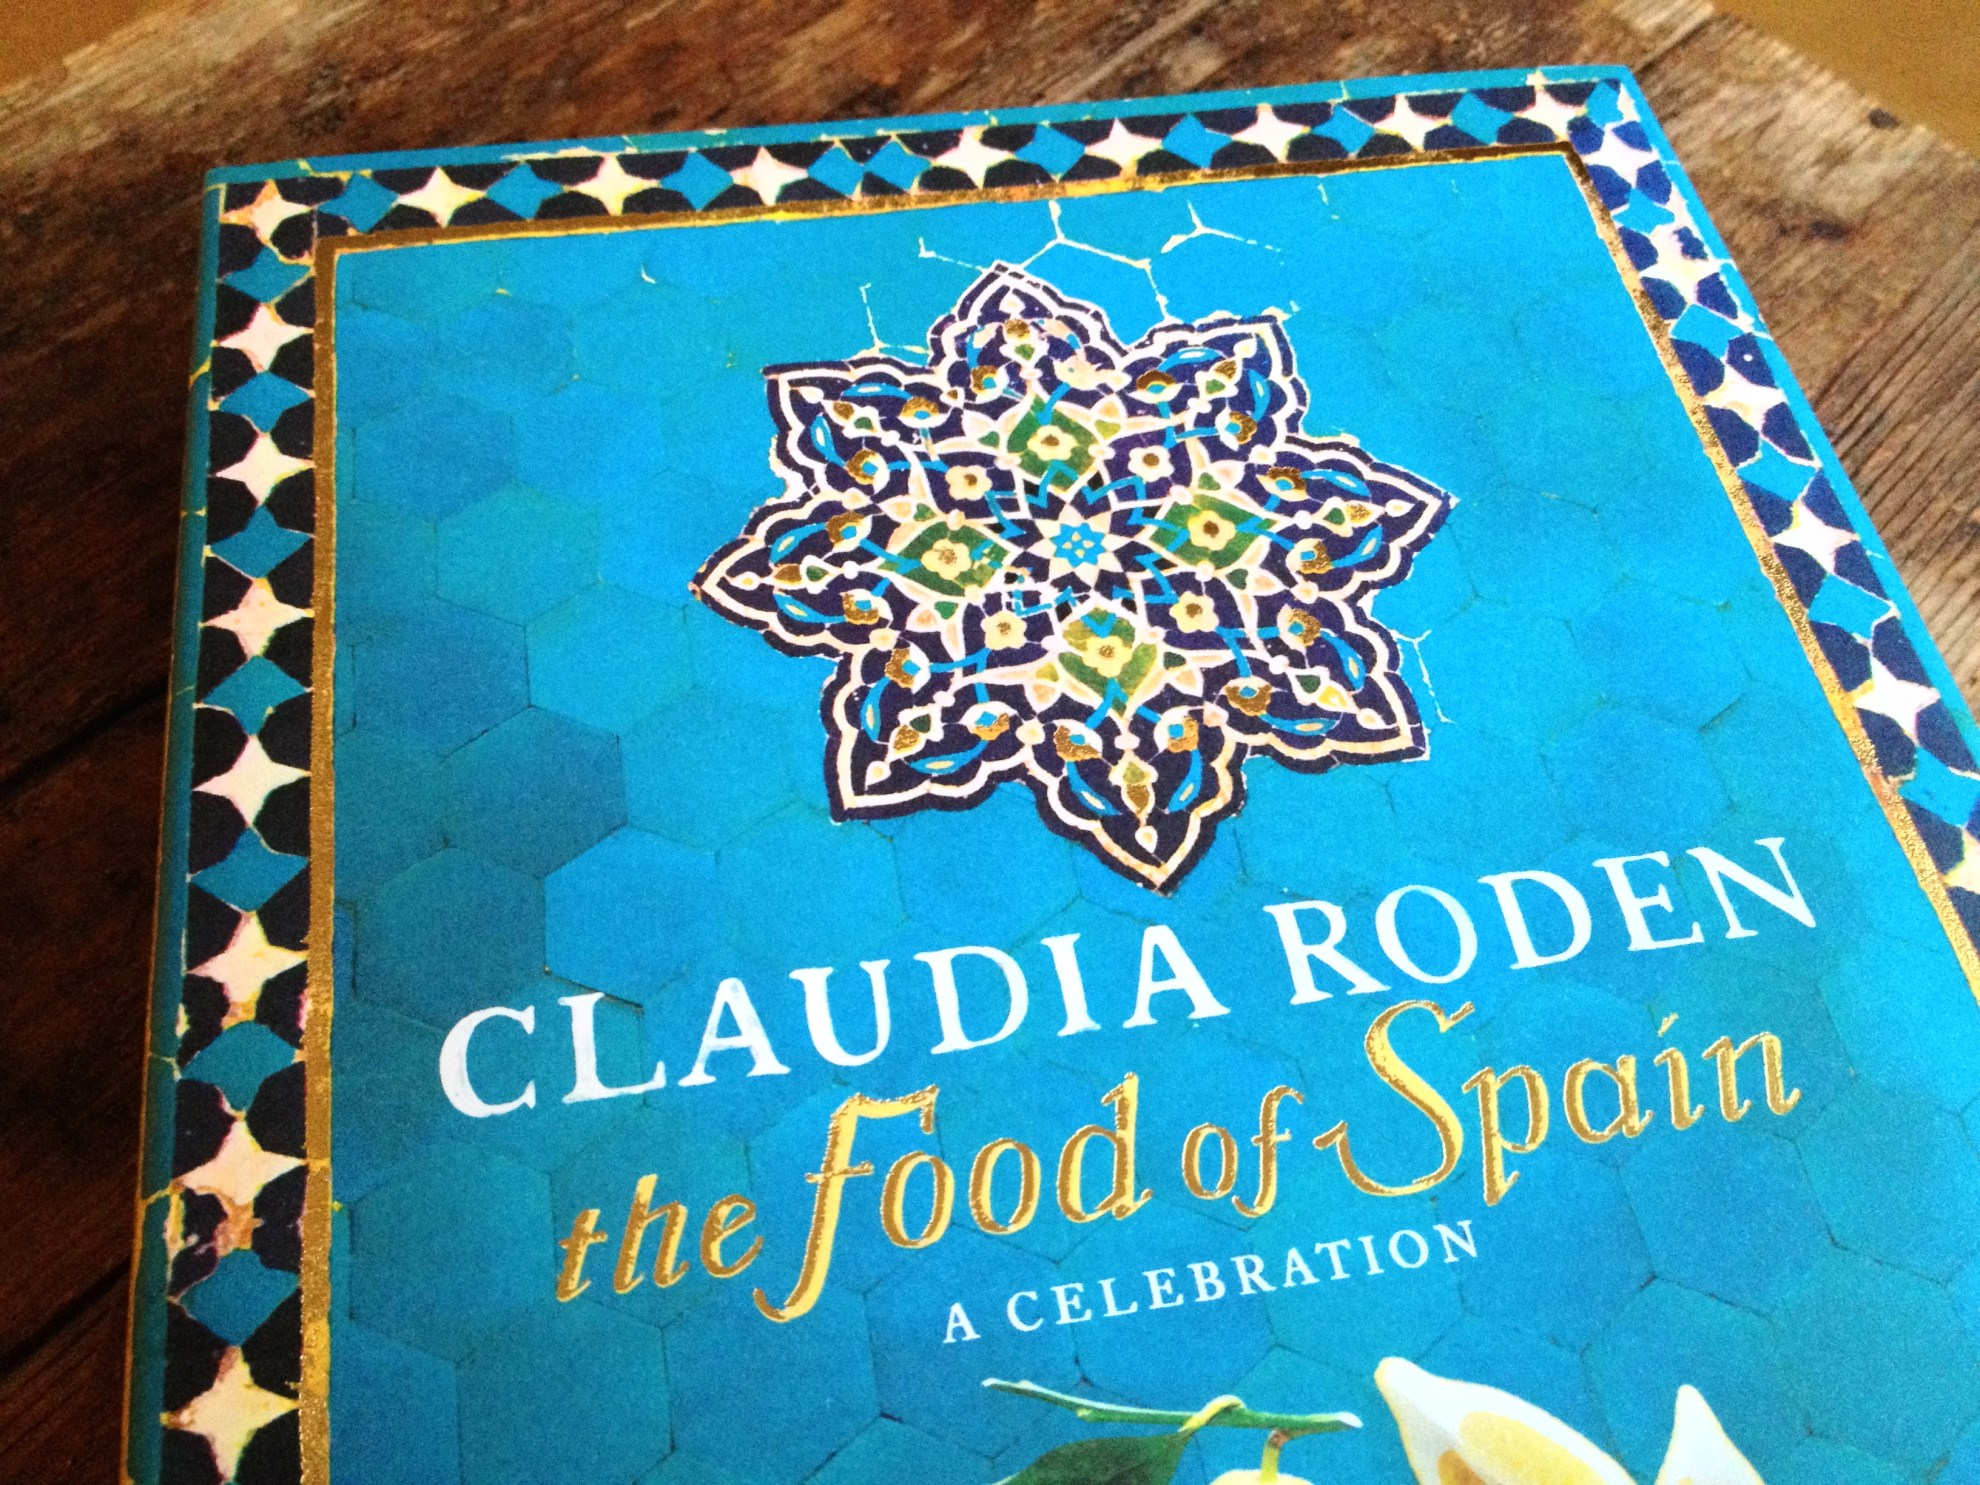 Claudia Roden The Food of Spain